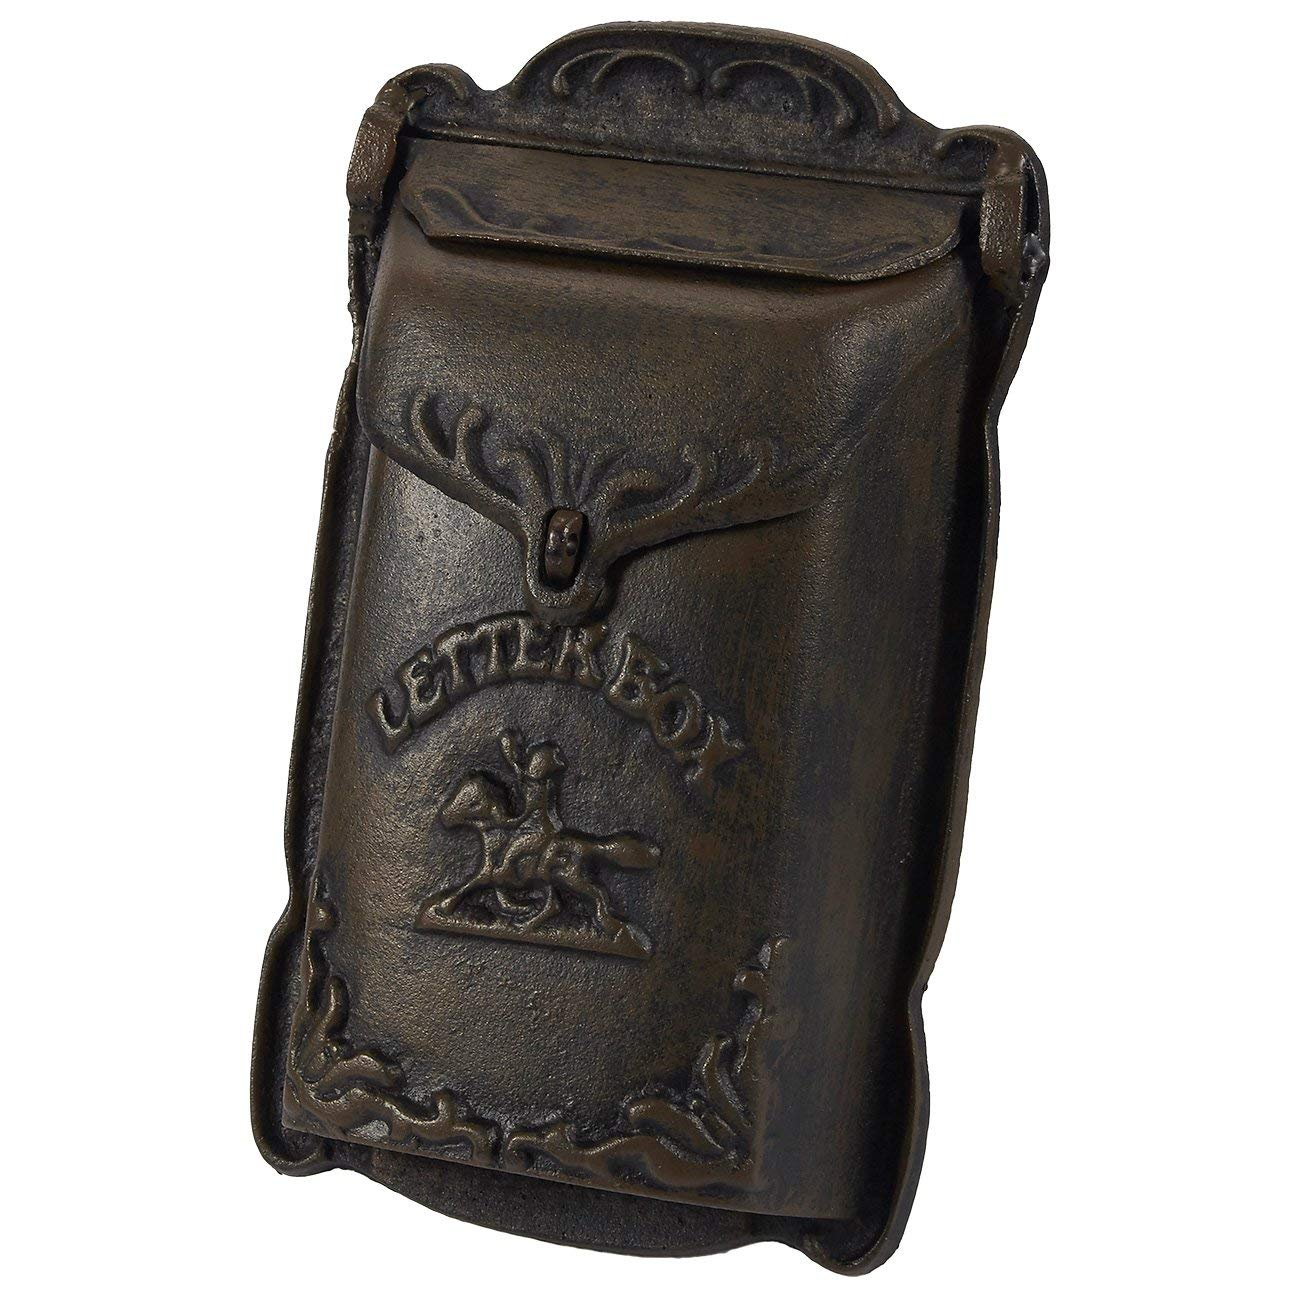 Cheap Vintage Wall Mount Mailbox, find Vintage Wall Mount